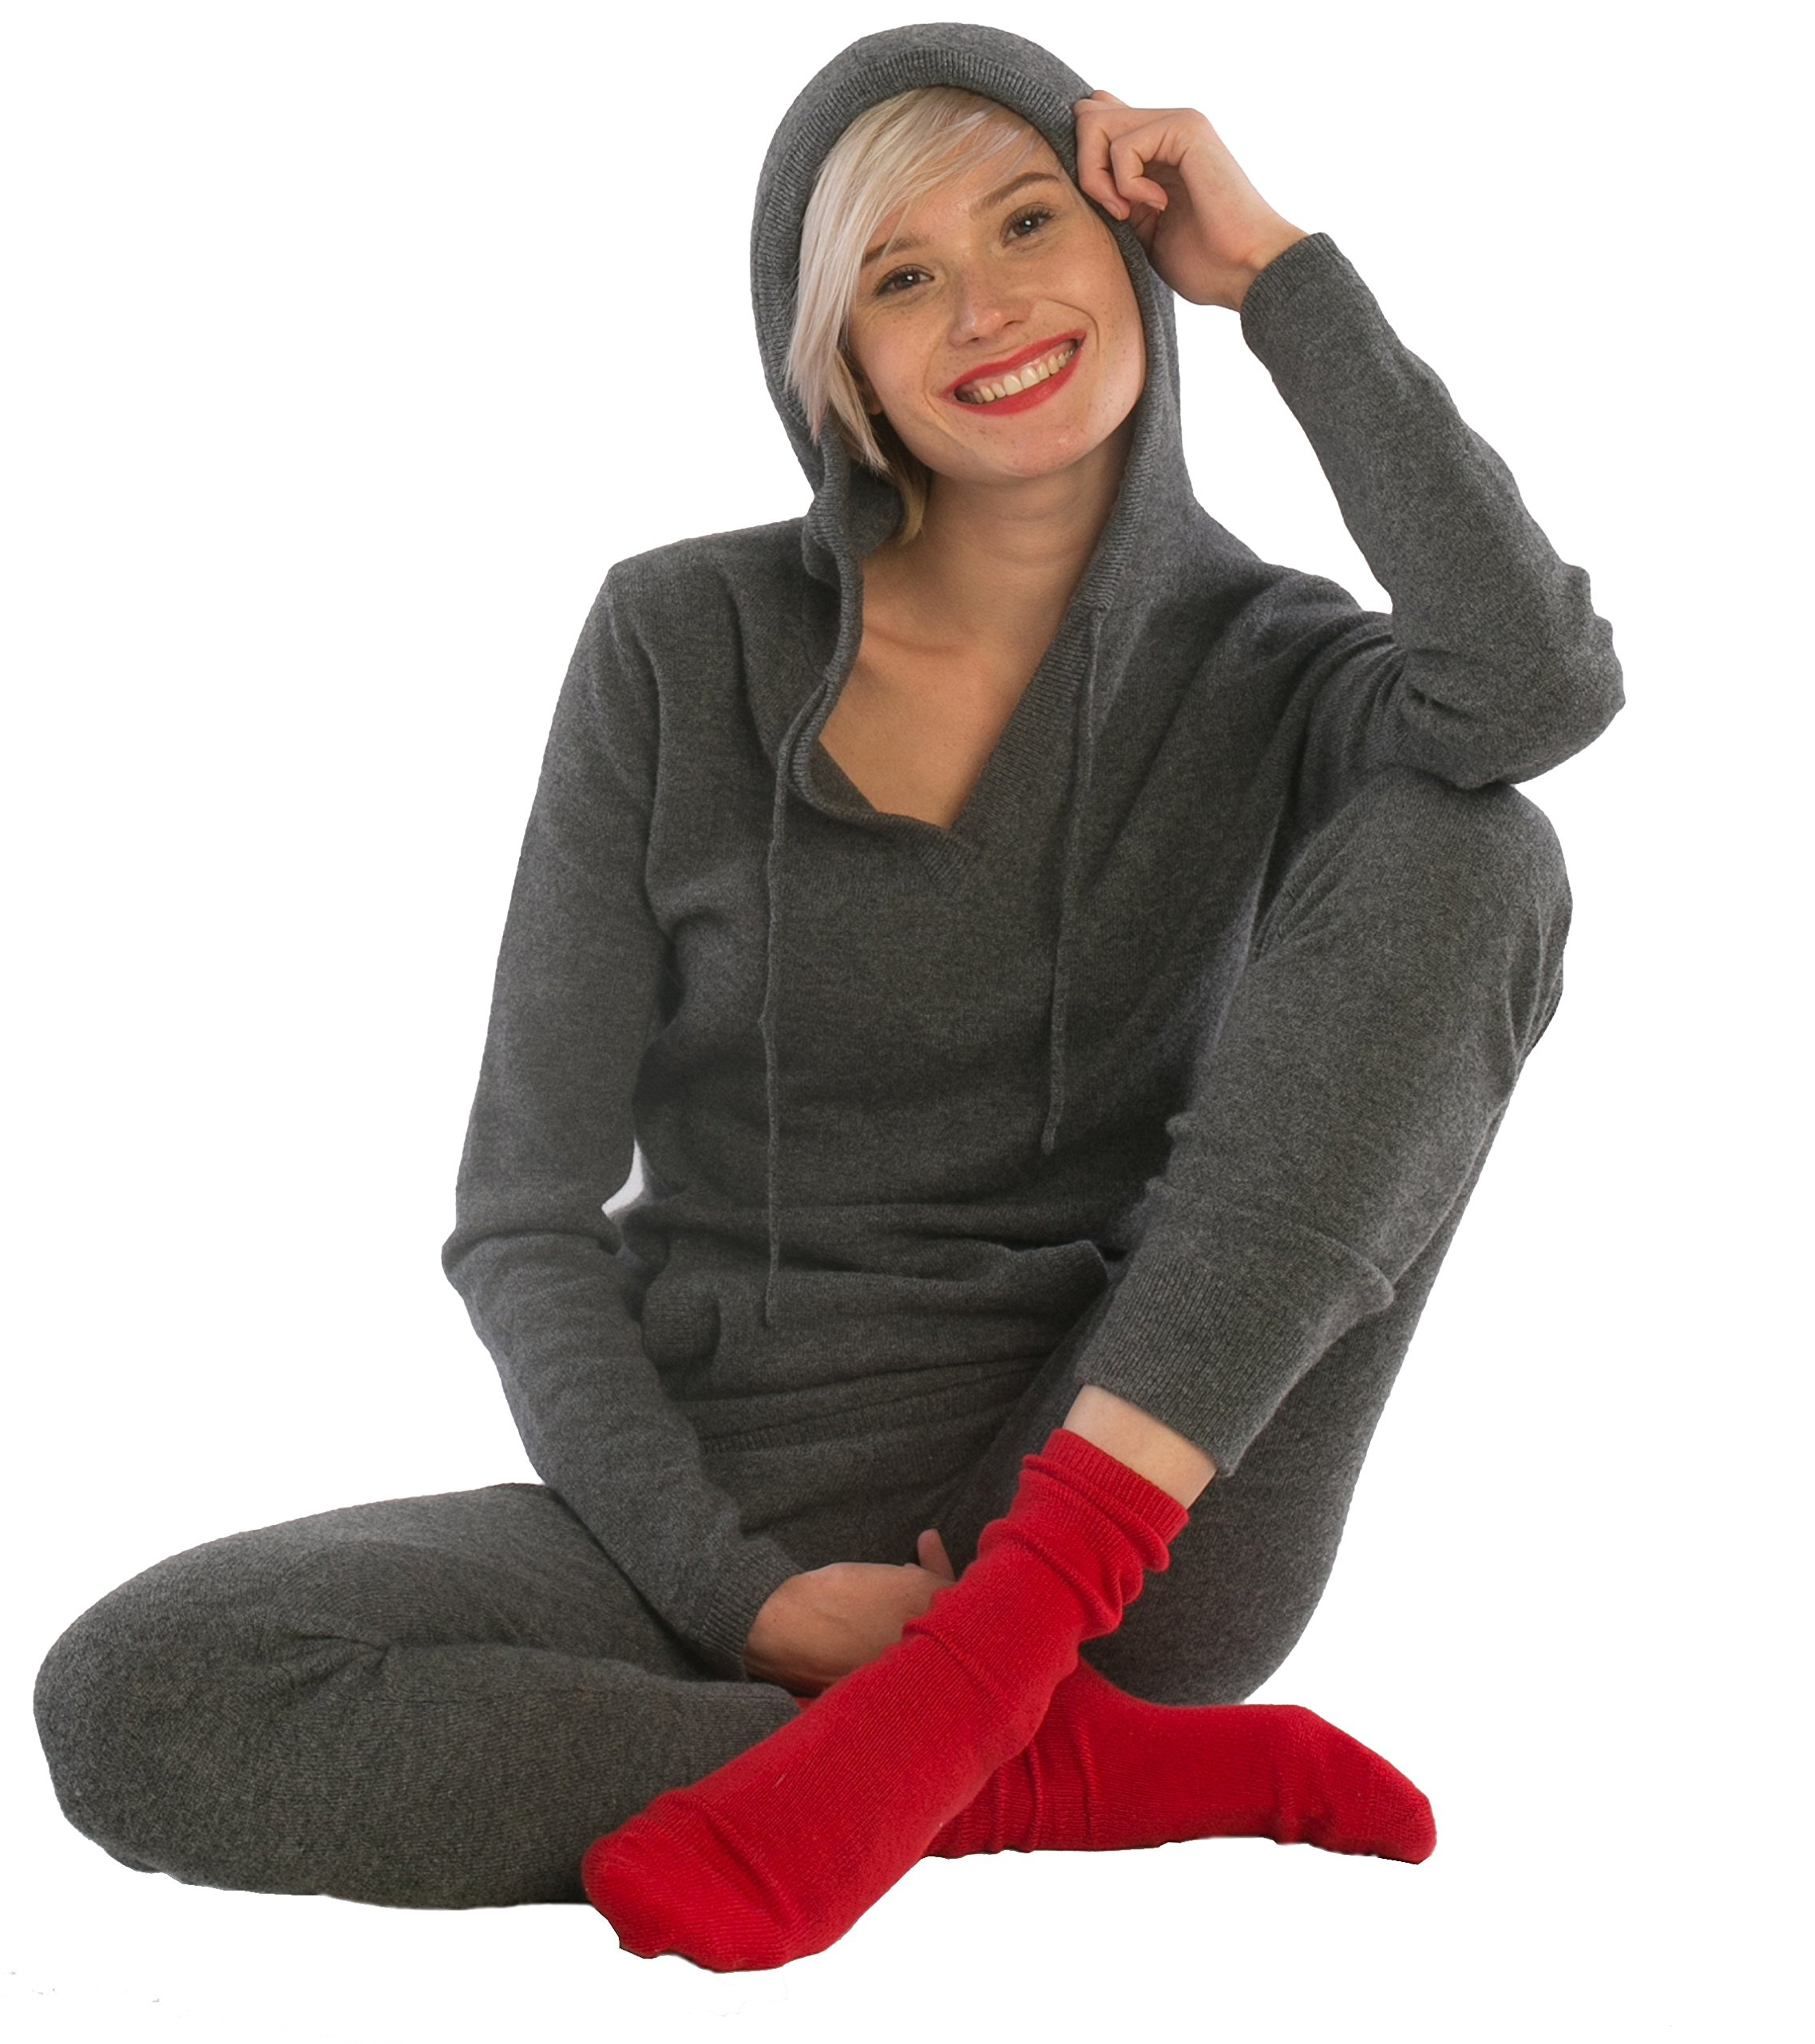 cashmere 4 U Women's 100% Cashmere V Neck Hoodie Sweater Pullover (X-Large, Gris Moyen) by cashmere 4 U (Image #2)